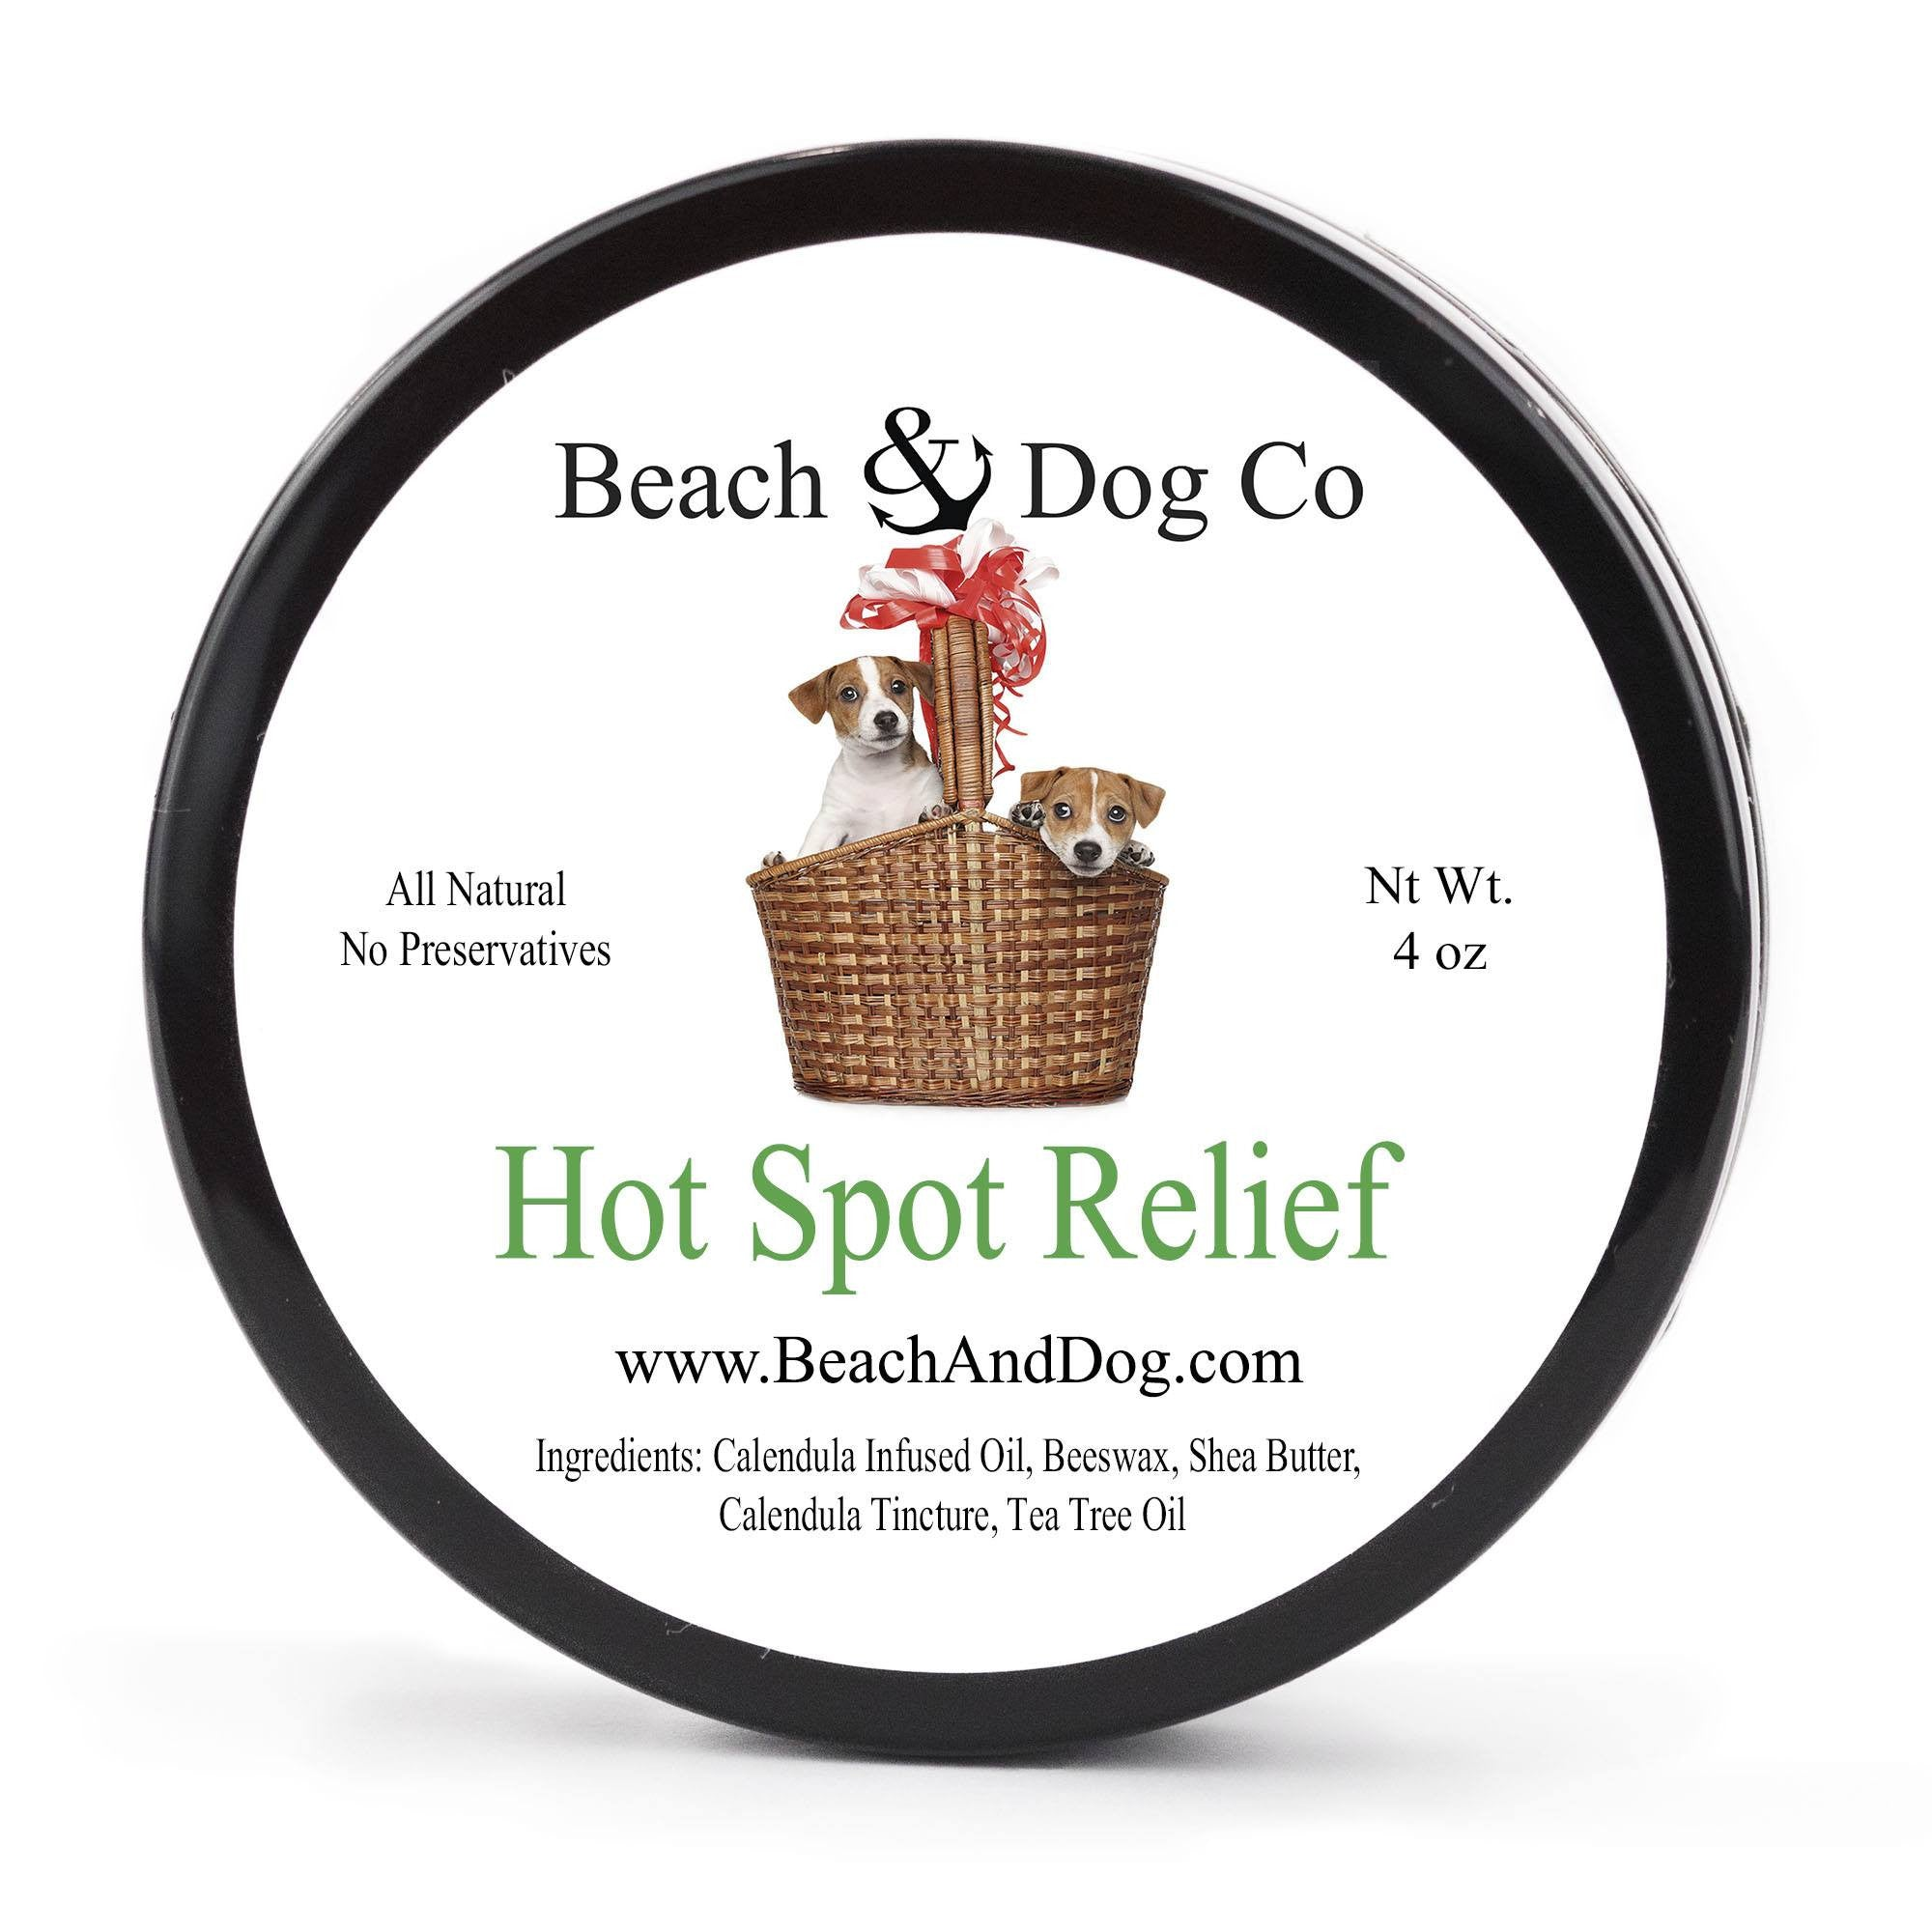 Hot Spot Relief (4 oz) Natural Itch Relief for Dogs - Beach & Dog Co.